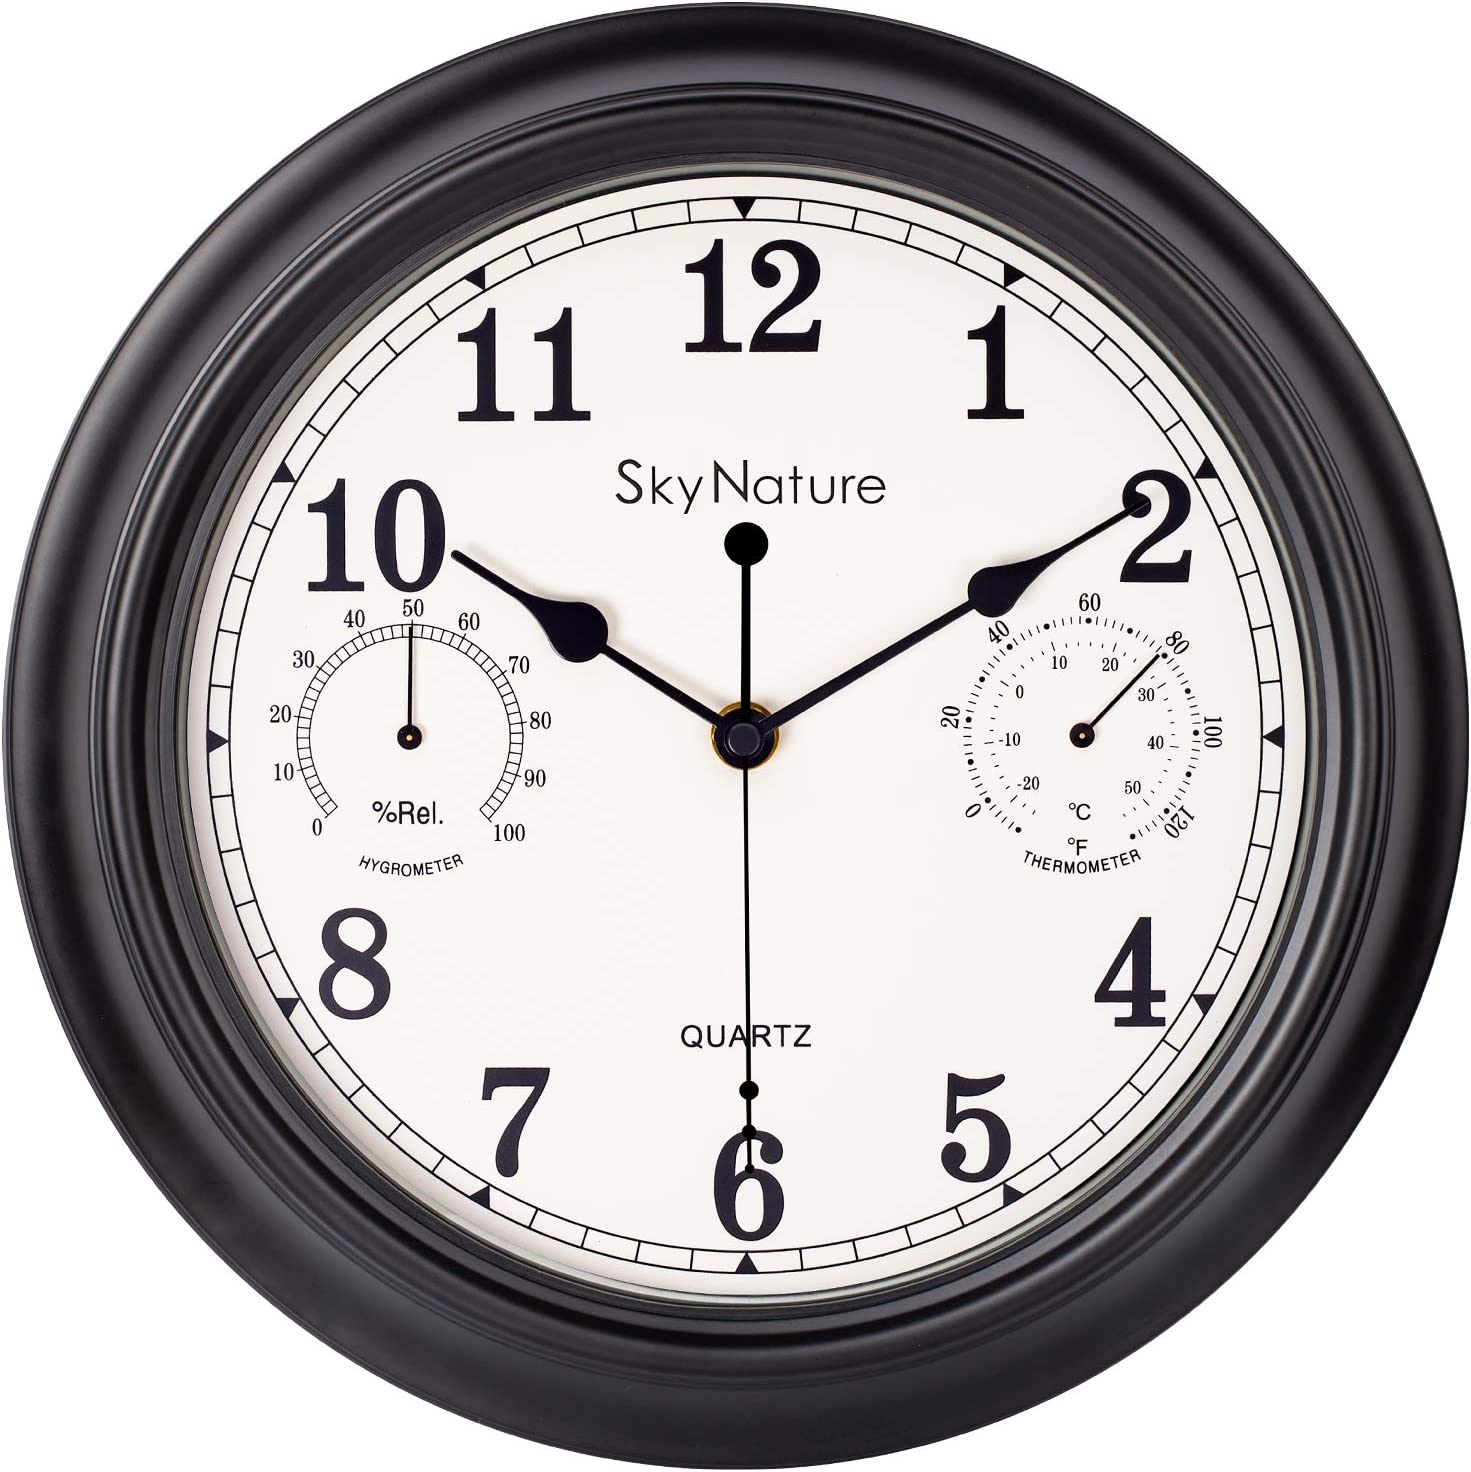 Indoor/Outdoor Wall Clock, 12 Inch Retro Decor Clock with Thermometer & Hygrometer Combo, Silent Non-Ticking Battery Operated Metal Clock for Home, Living Room, Kitchen, Garden, Den. Matt black